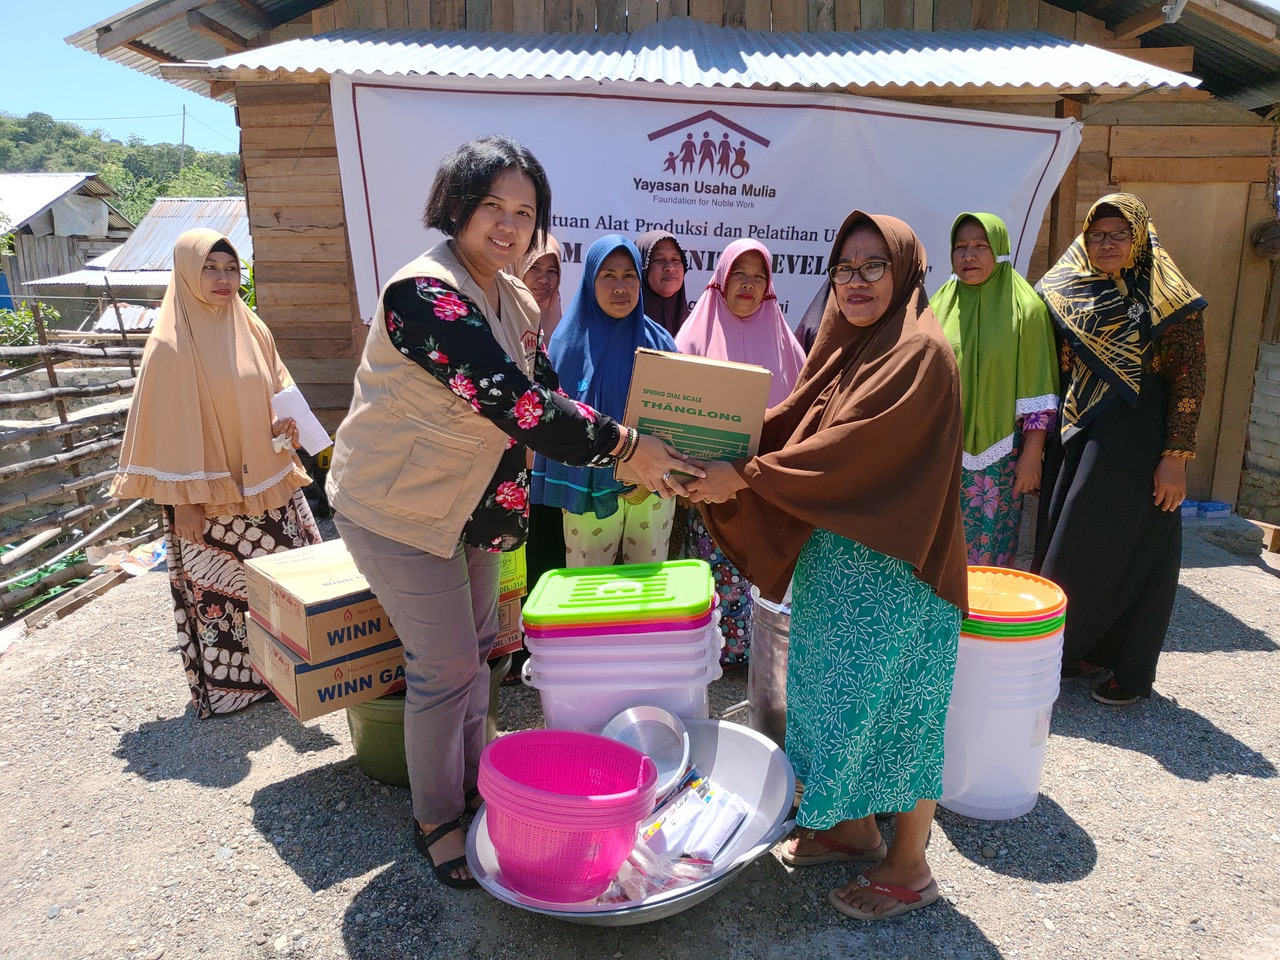 YUM was given the opportunity to help activate the local economy that had temporarily stopped due to the disasters by empowering groups of women, most of them housewives, from five villages in Palu, Donggala and Sigi.